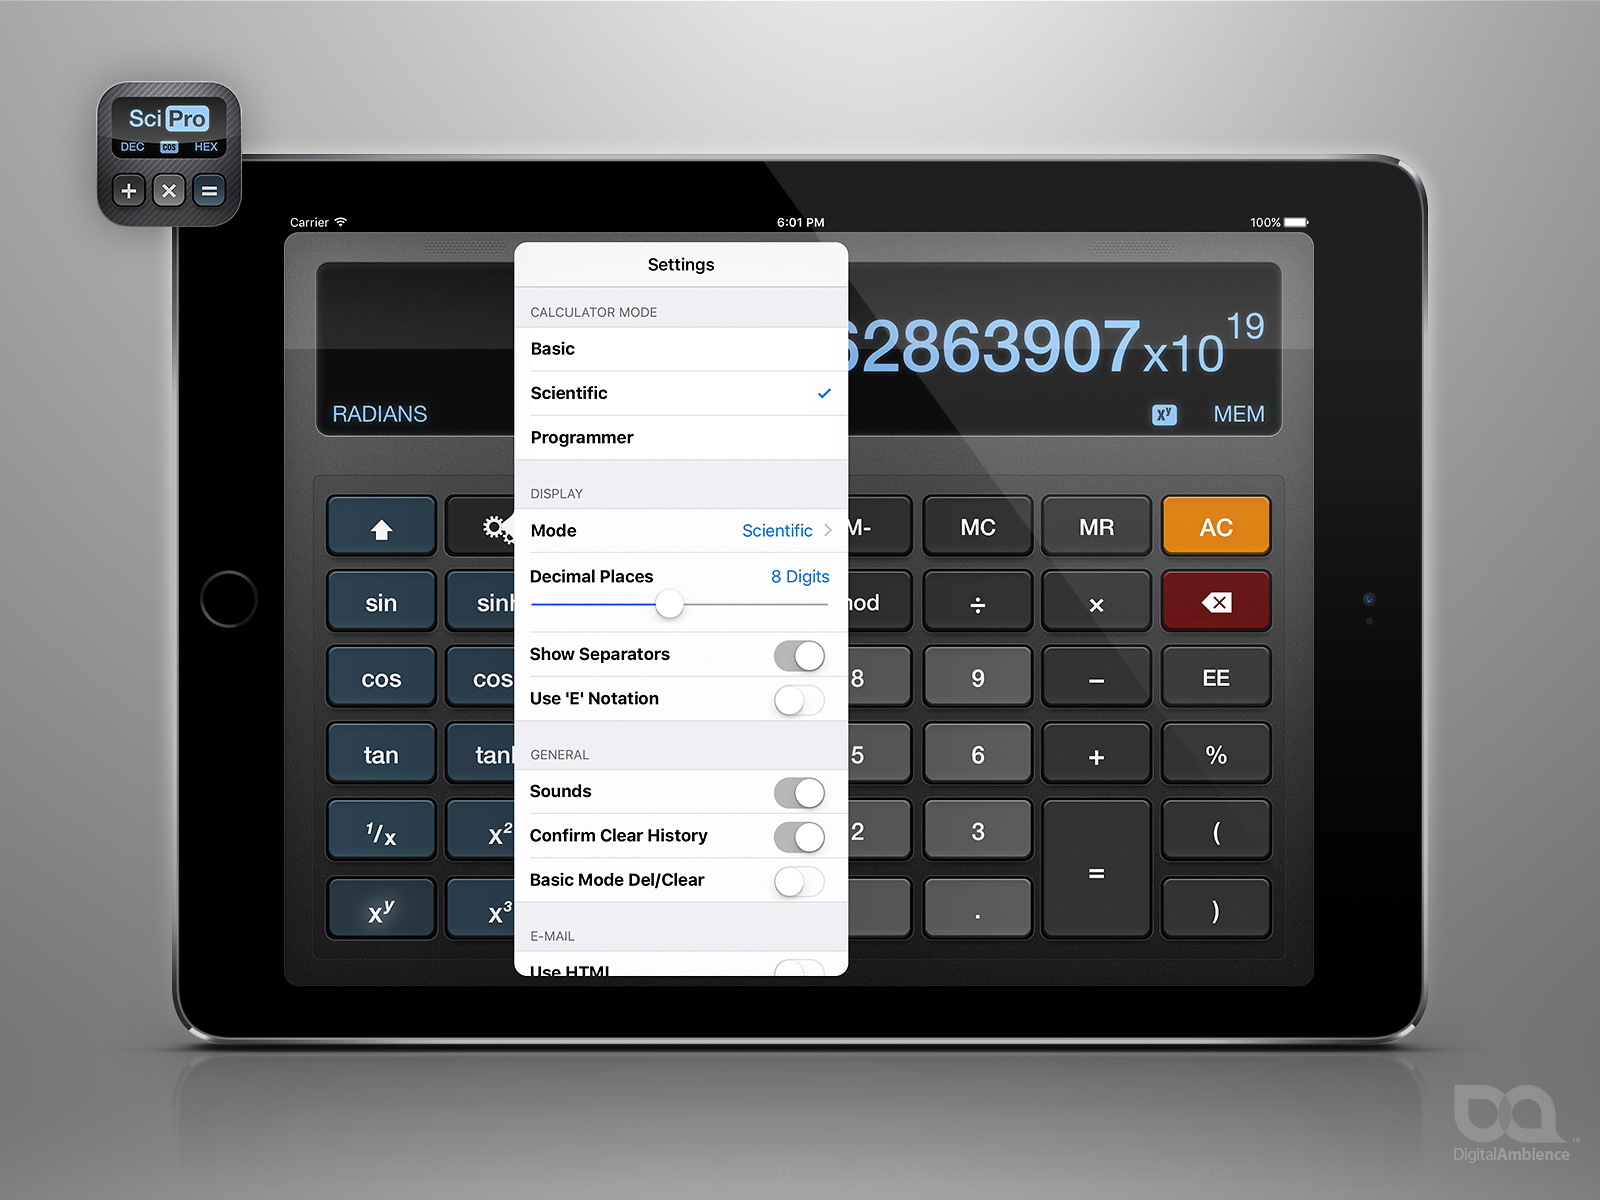 Scipro Calculator For Iphone Ipad Ipod Touch Digital Ambience